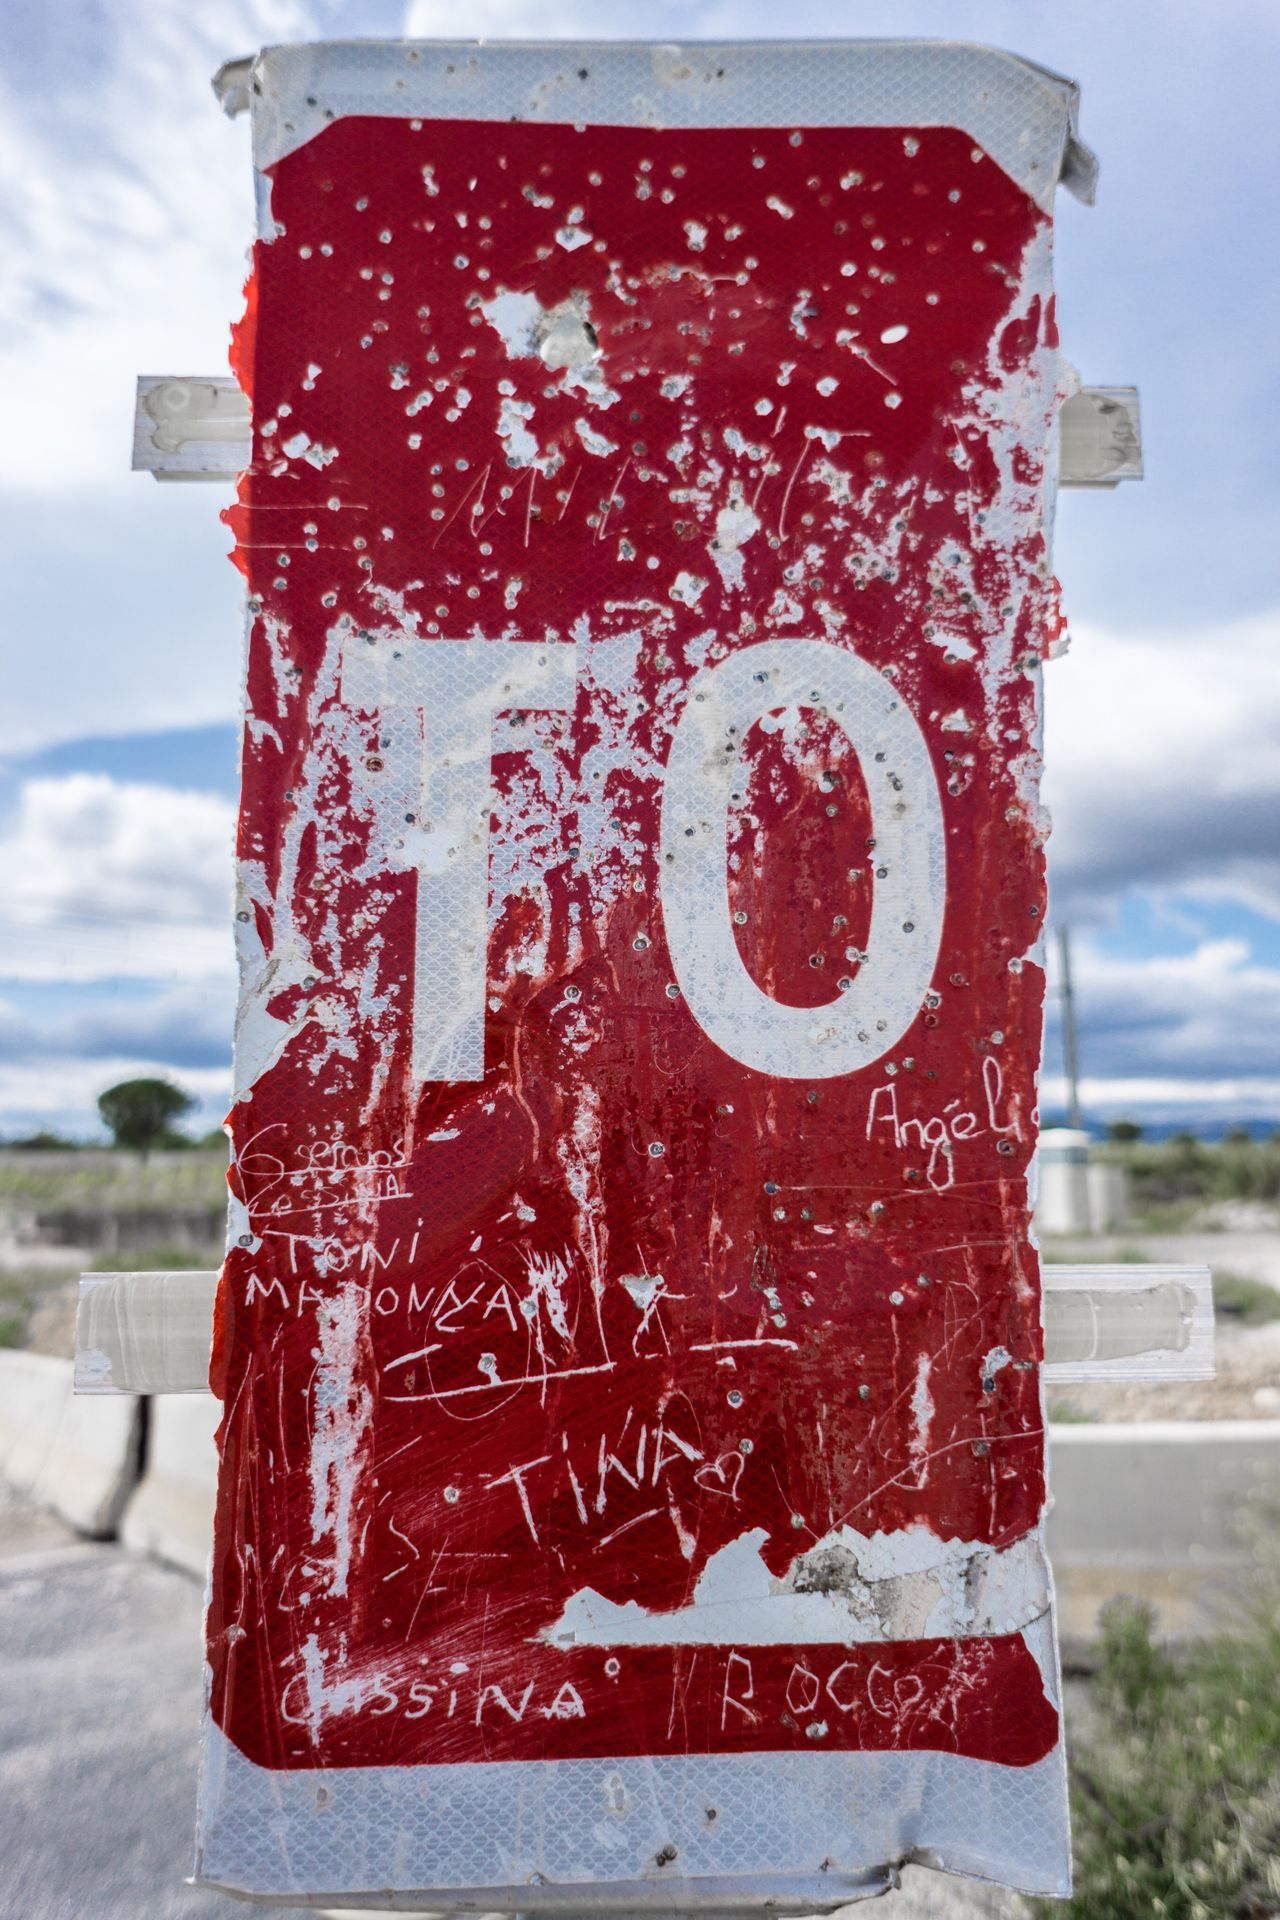 Stop Stop Sign Vandalism Schrapnel Red Sign Tag Rocco Broken Sony Sony A6000 A6000 Sonyalpha Day Outdoors Gipsy Gipsylife Style Target Target Shooting Aim France